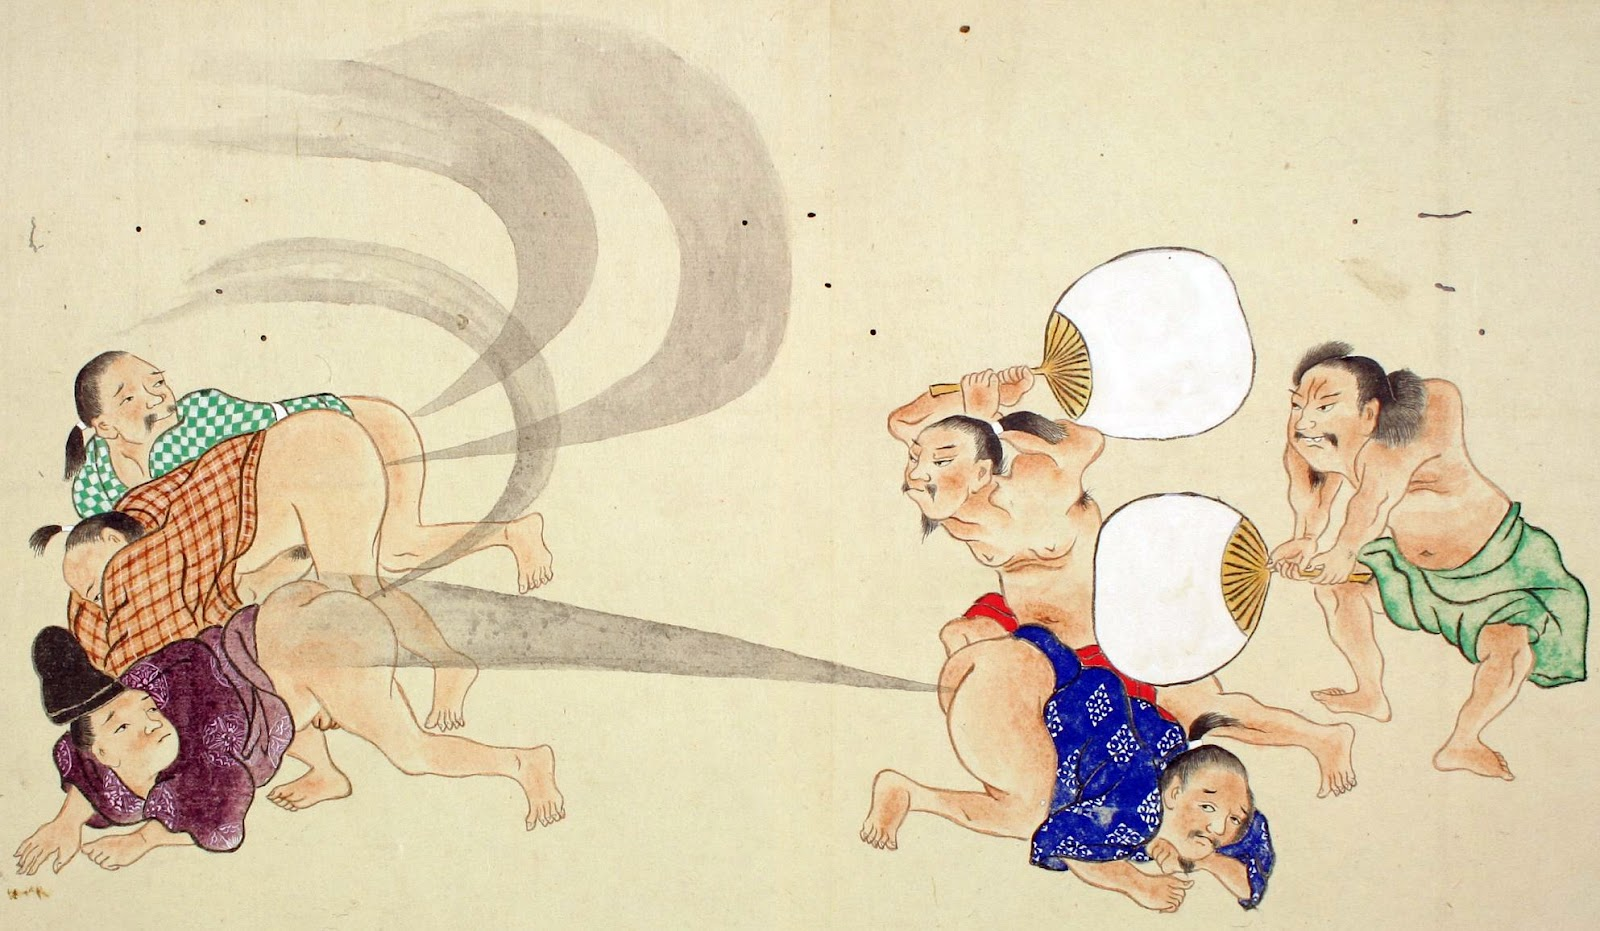 I Have No Idea Why Fart Fights Are Big In Ancient Japanese Scroll Painting But It Seems That They Indeed A Thing Heres Couple More Images From The